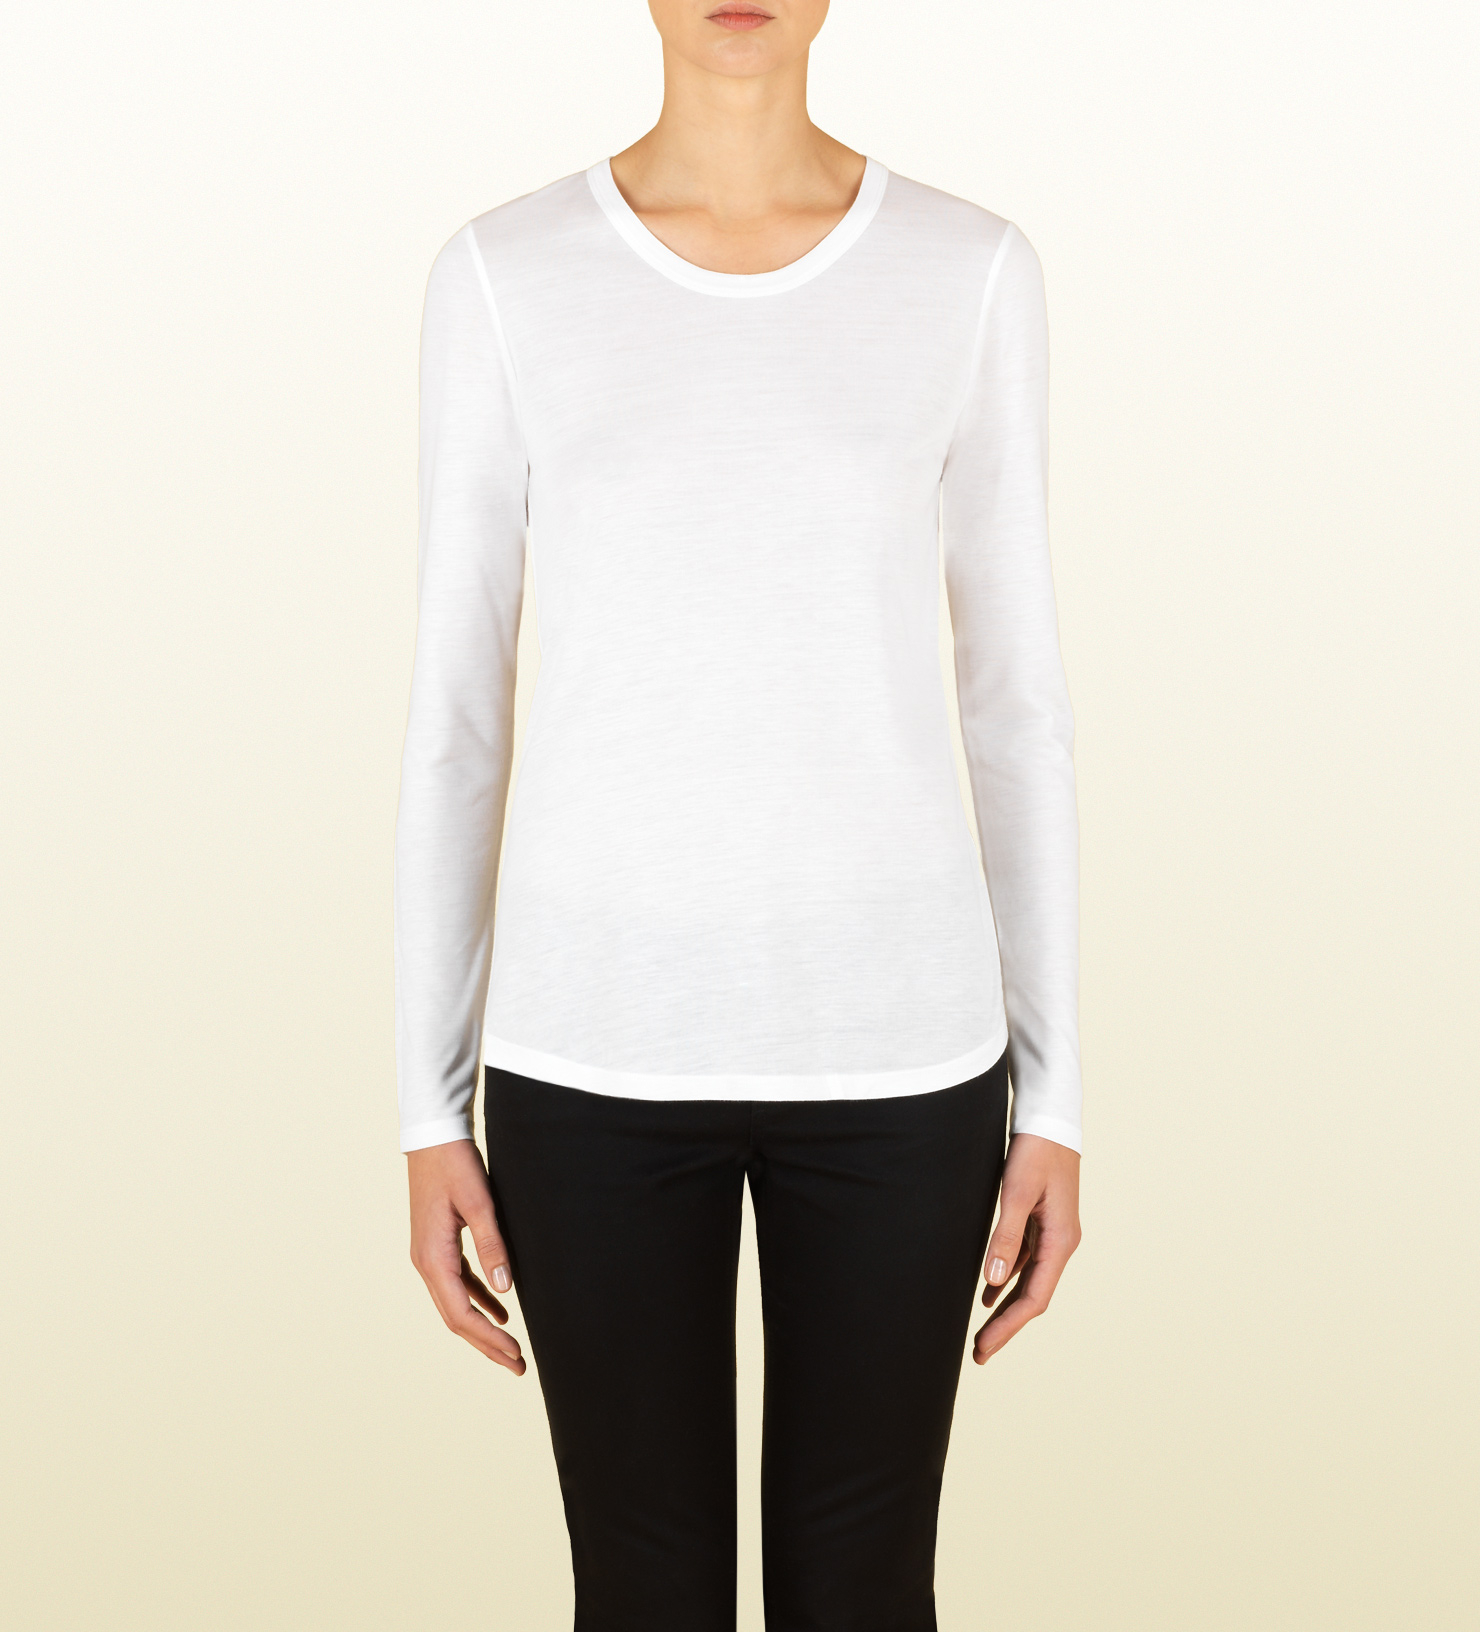 Lyst - Gucci Women s White Silk Jersey Long Sleeve T-shirt From ... 4ccfb72dfc